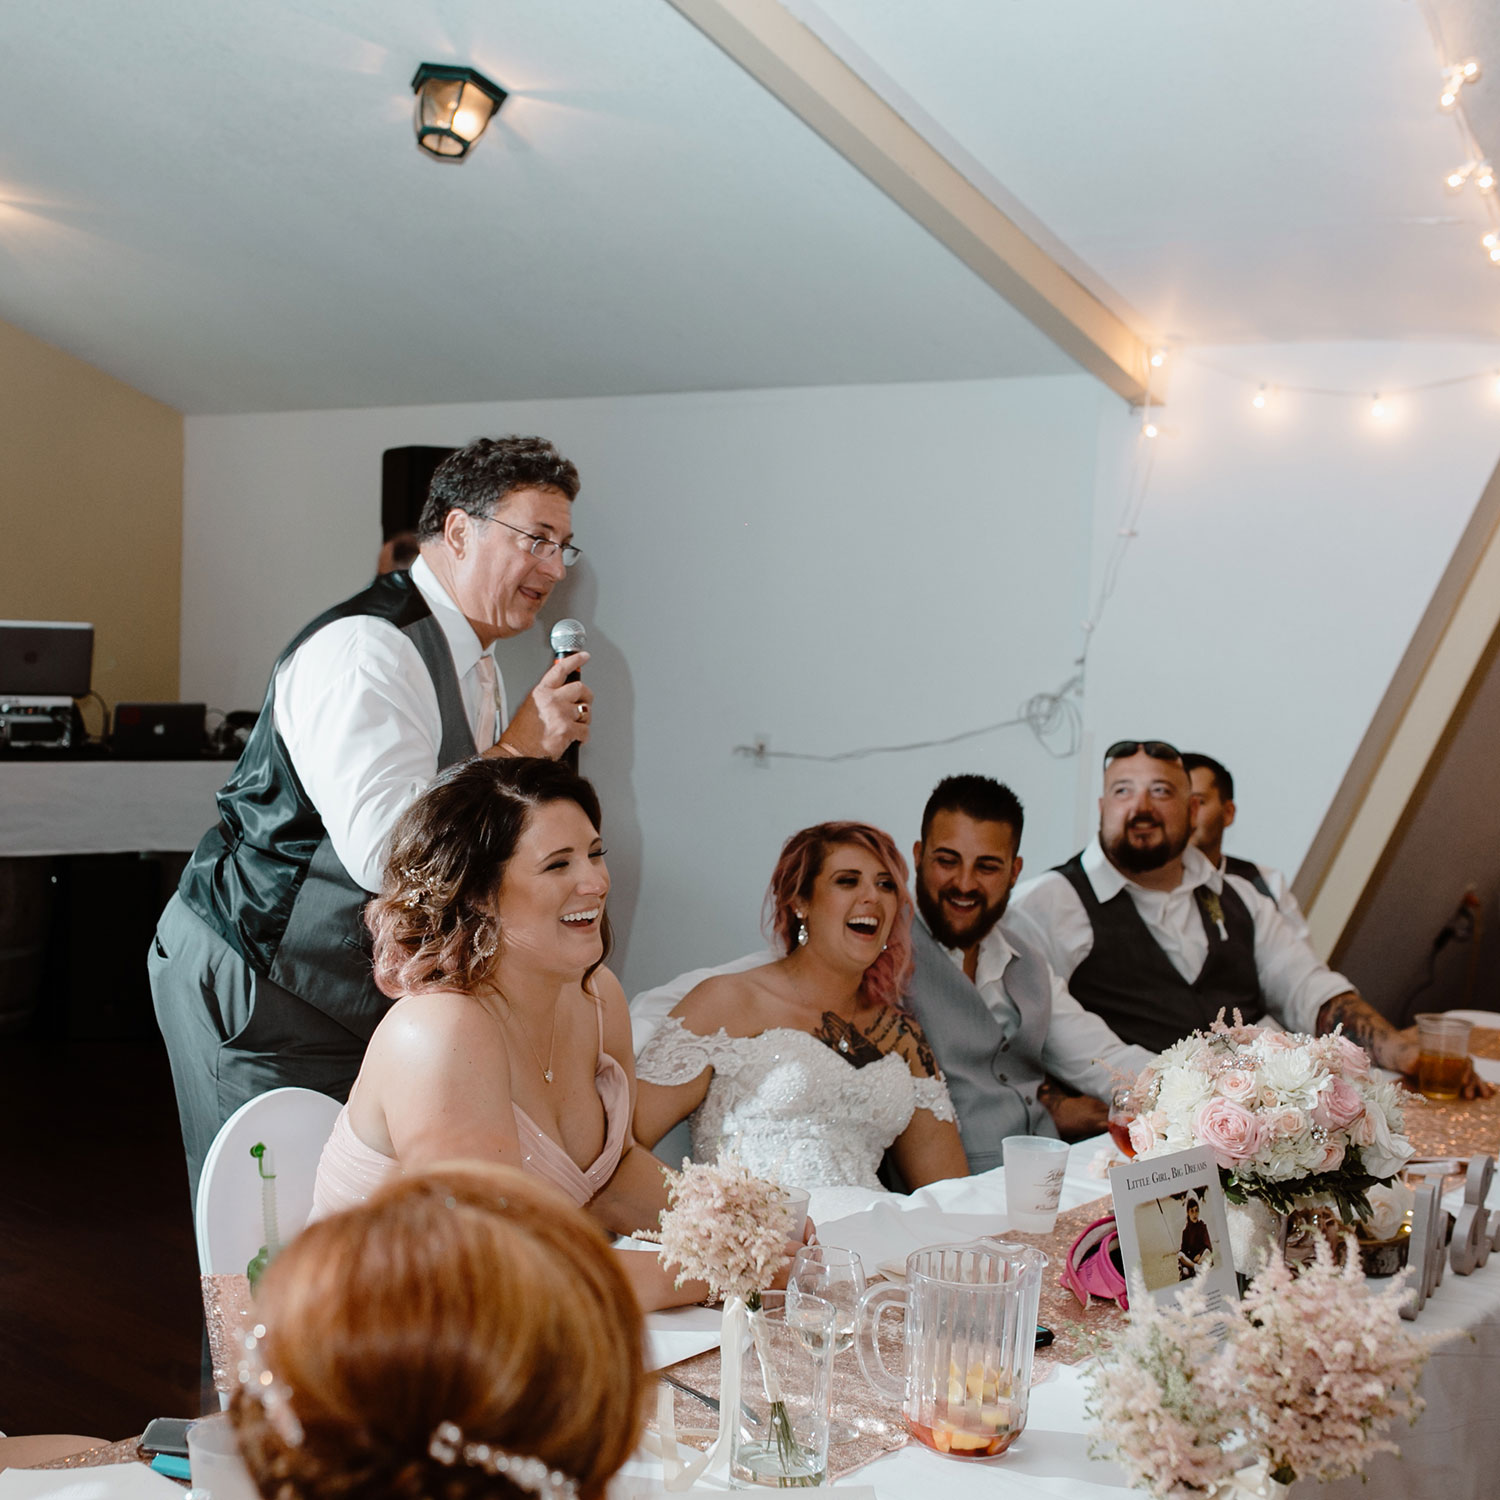 father-of-bride-speech-laughing-wedding-summerset-winery-indianola-iowa-raelyn-ramey-photography.jpg